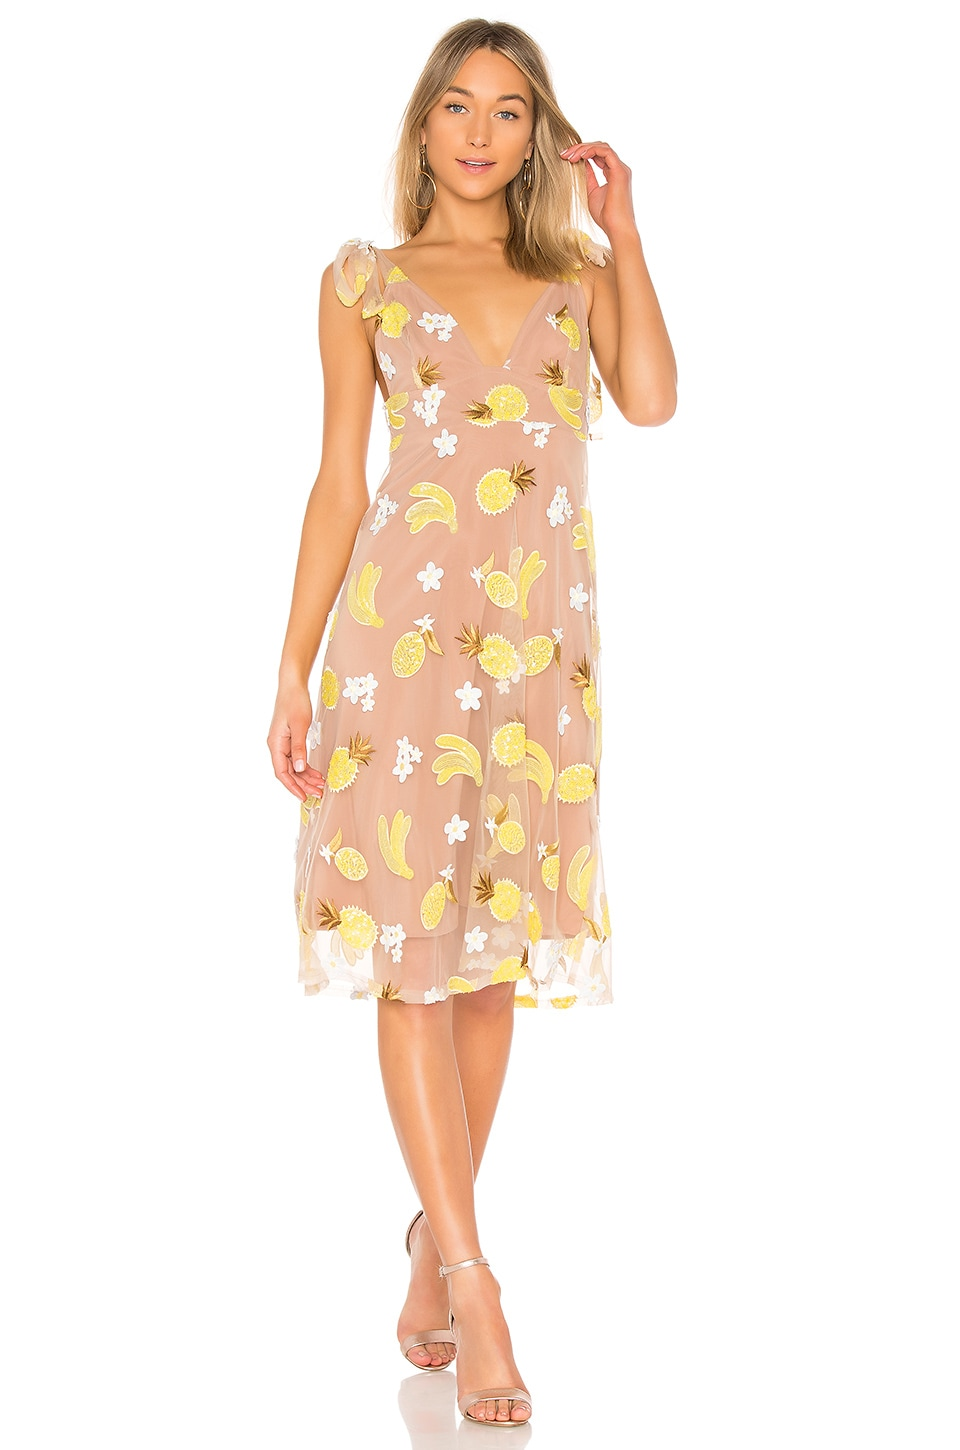 For Love & Lemons Fruitpunch Sequin Midi Dress in Pineapple